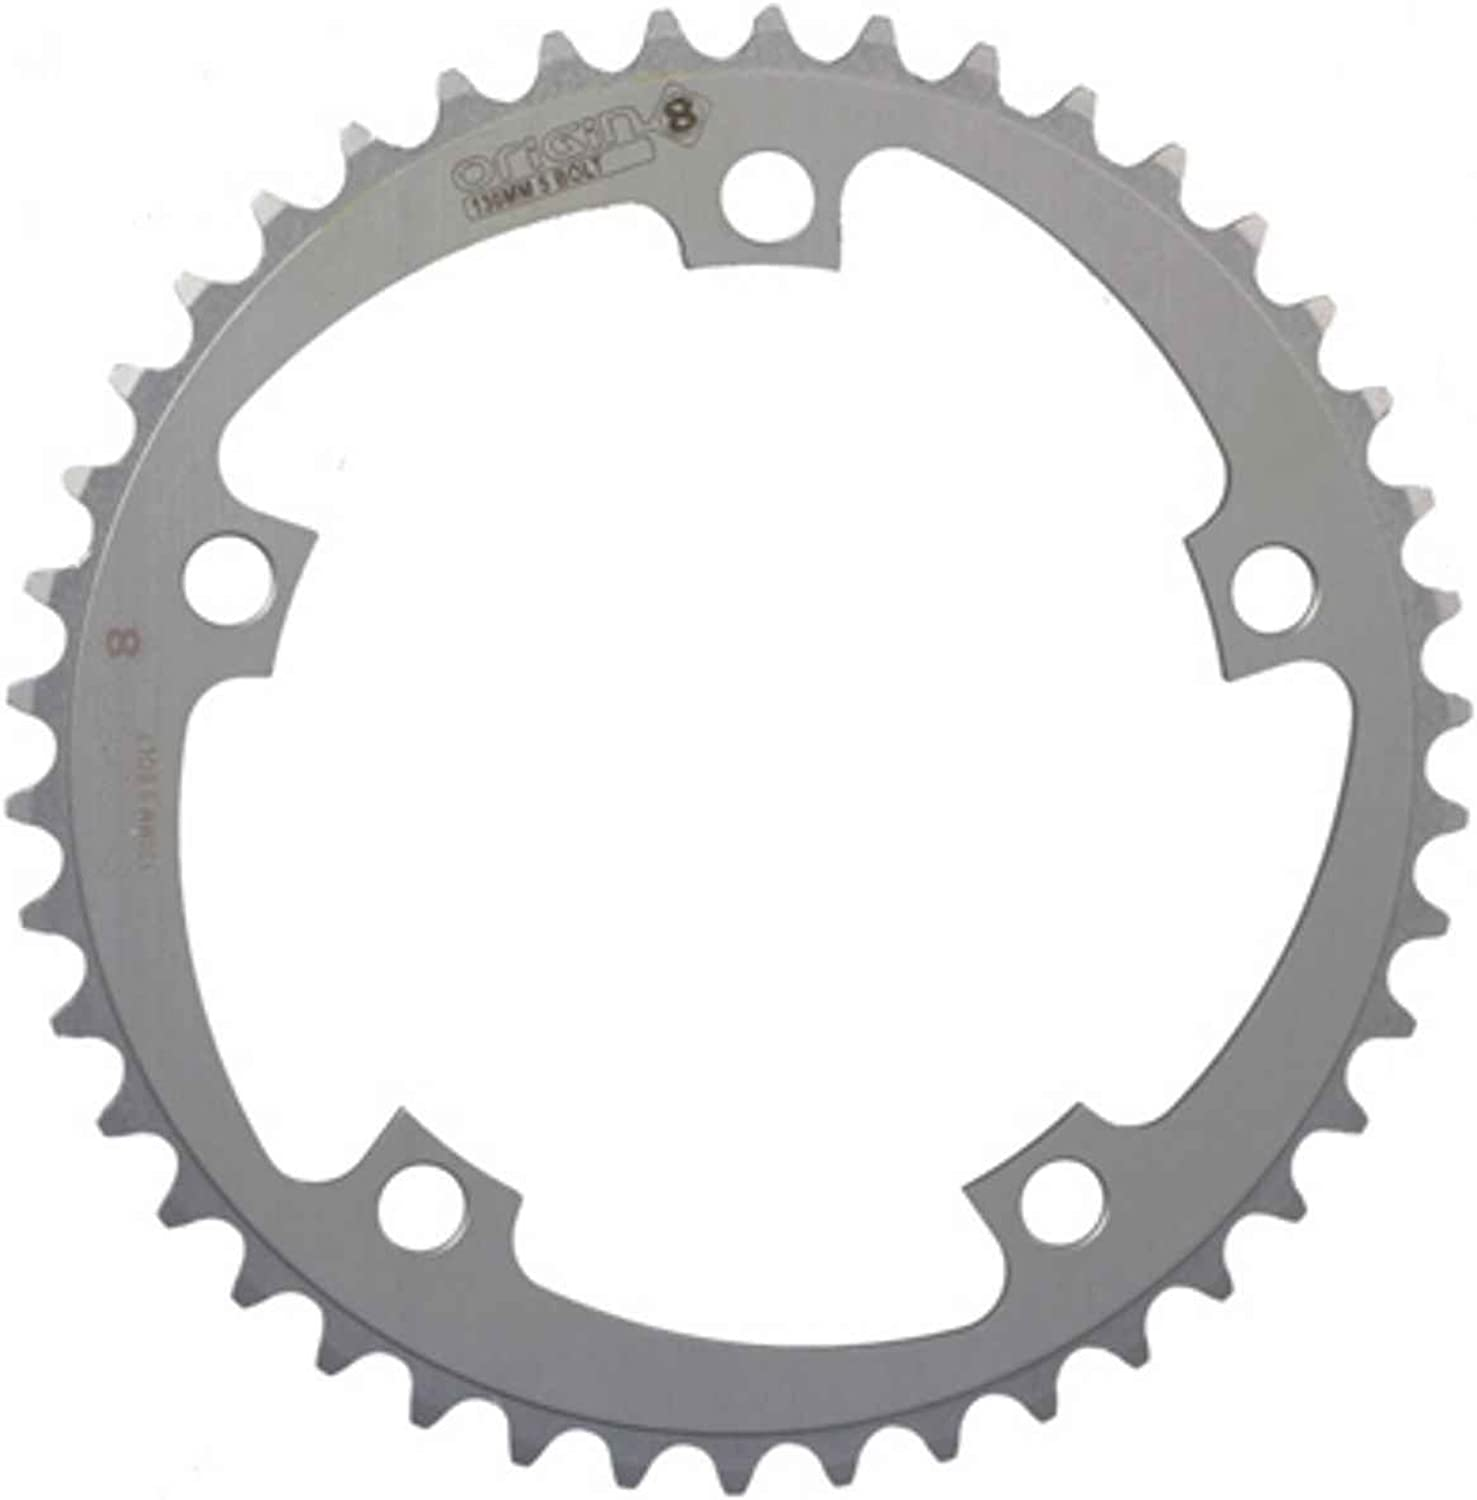 Origin8 Alloy Blade Chainrings 94mm 5 bolt 32t